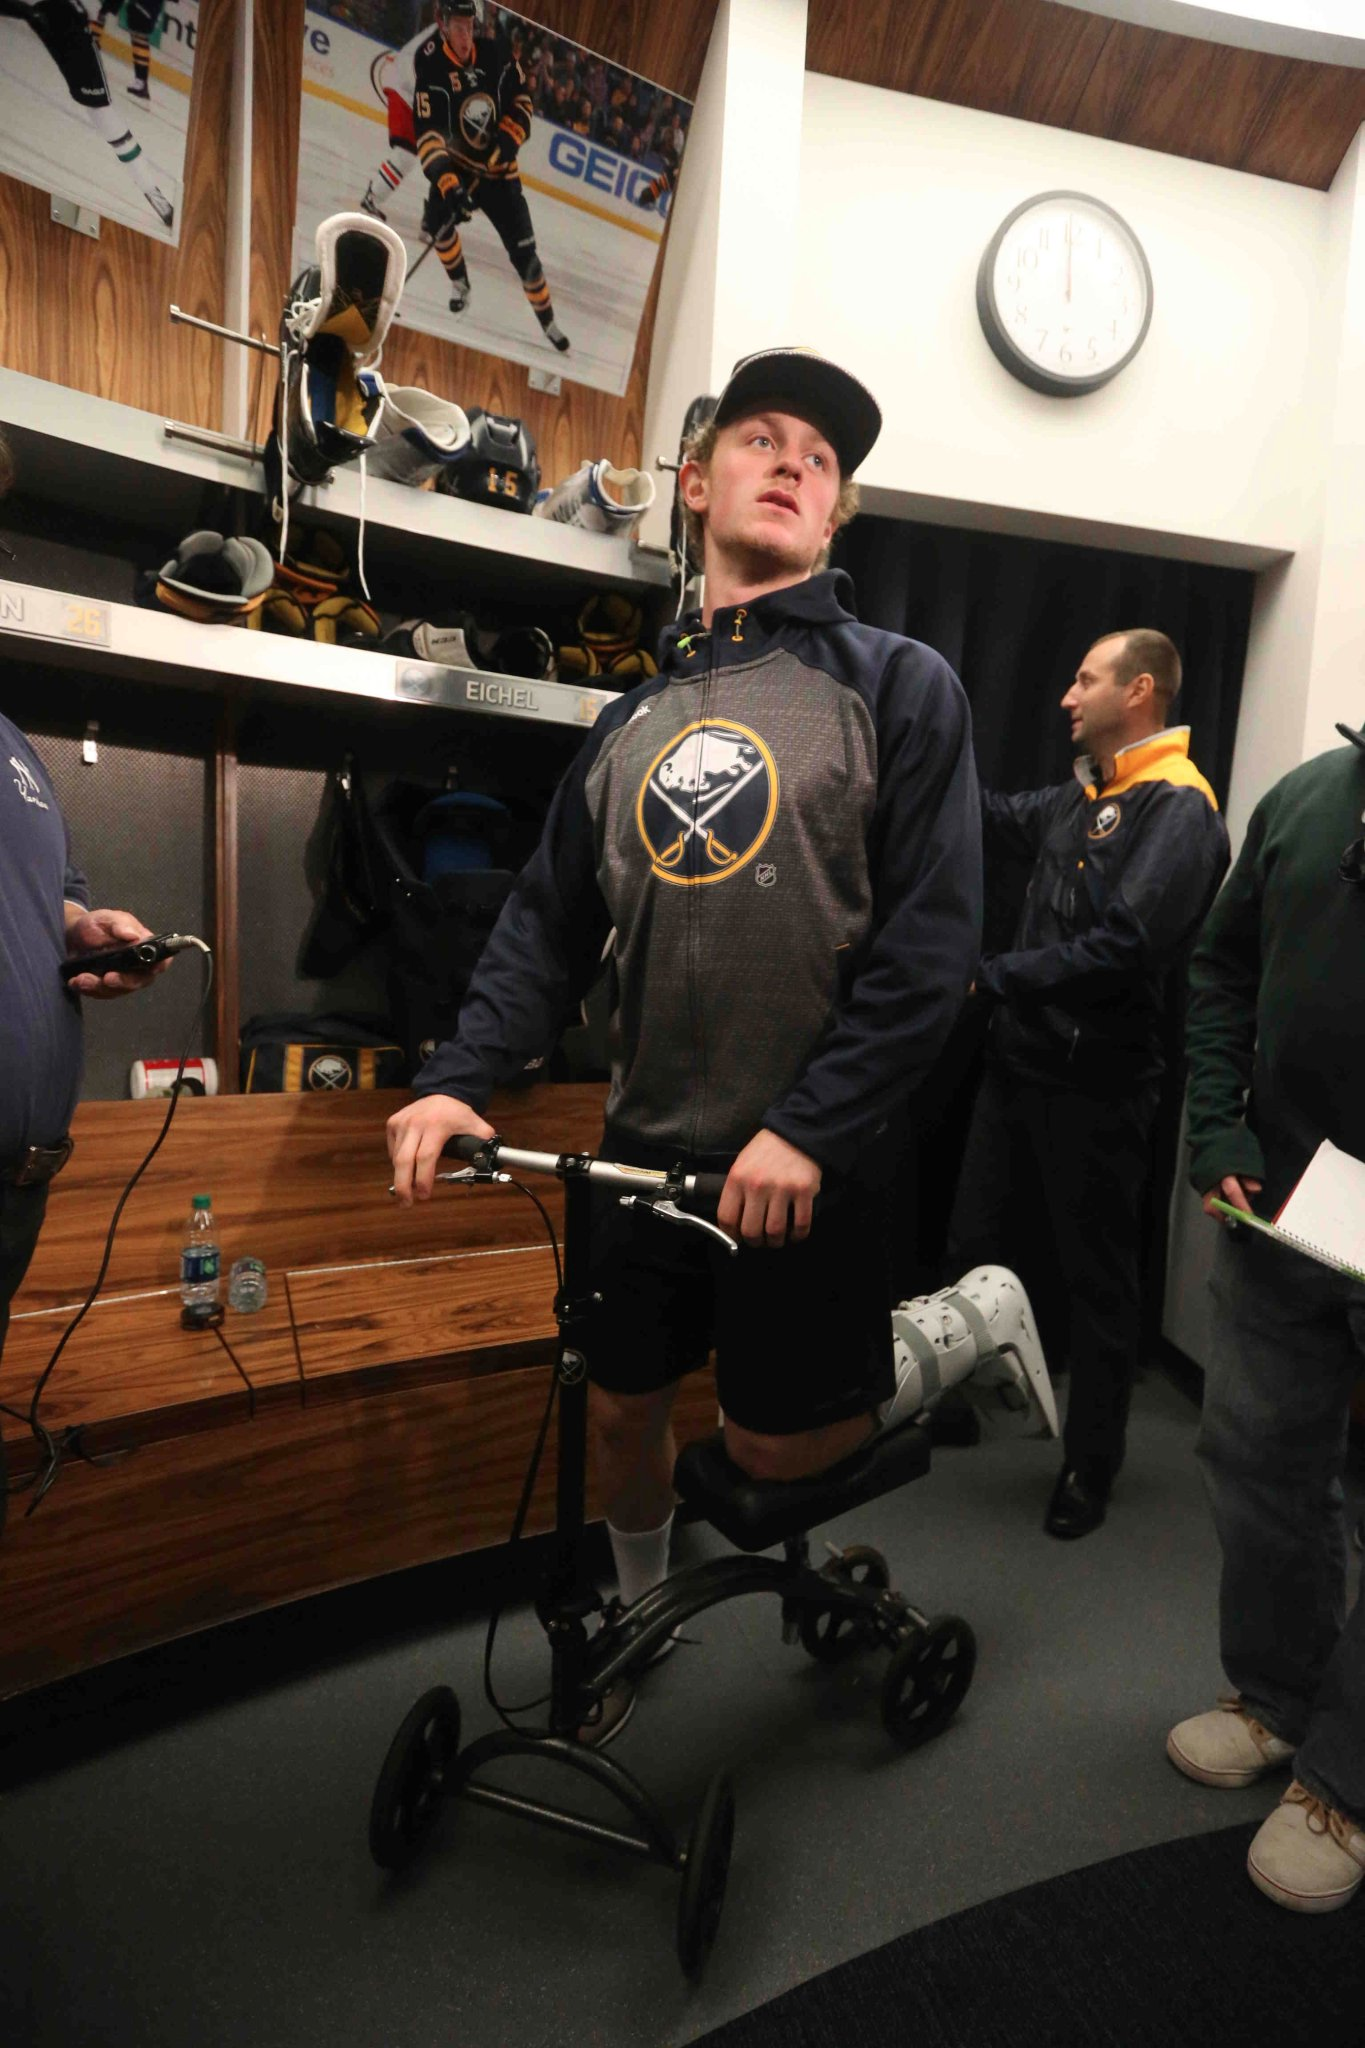 Jack Eichel says it was hard to sit back and watch. (Photo by John Hickey/Buffalo News)